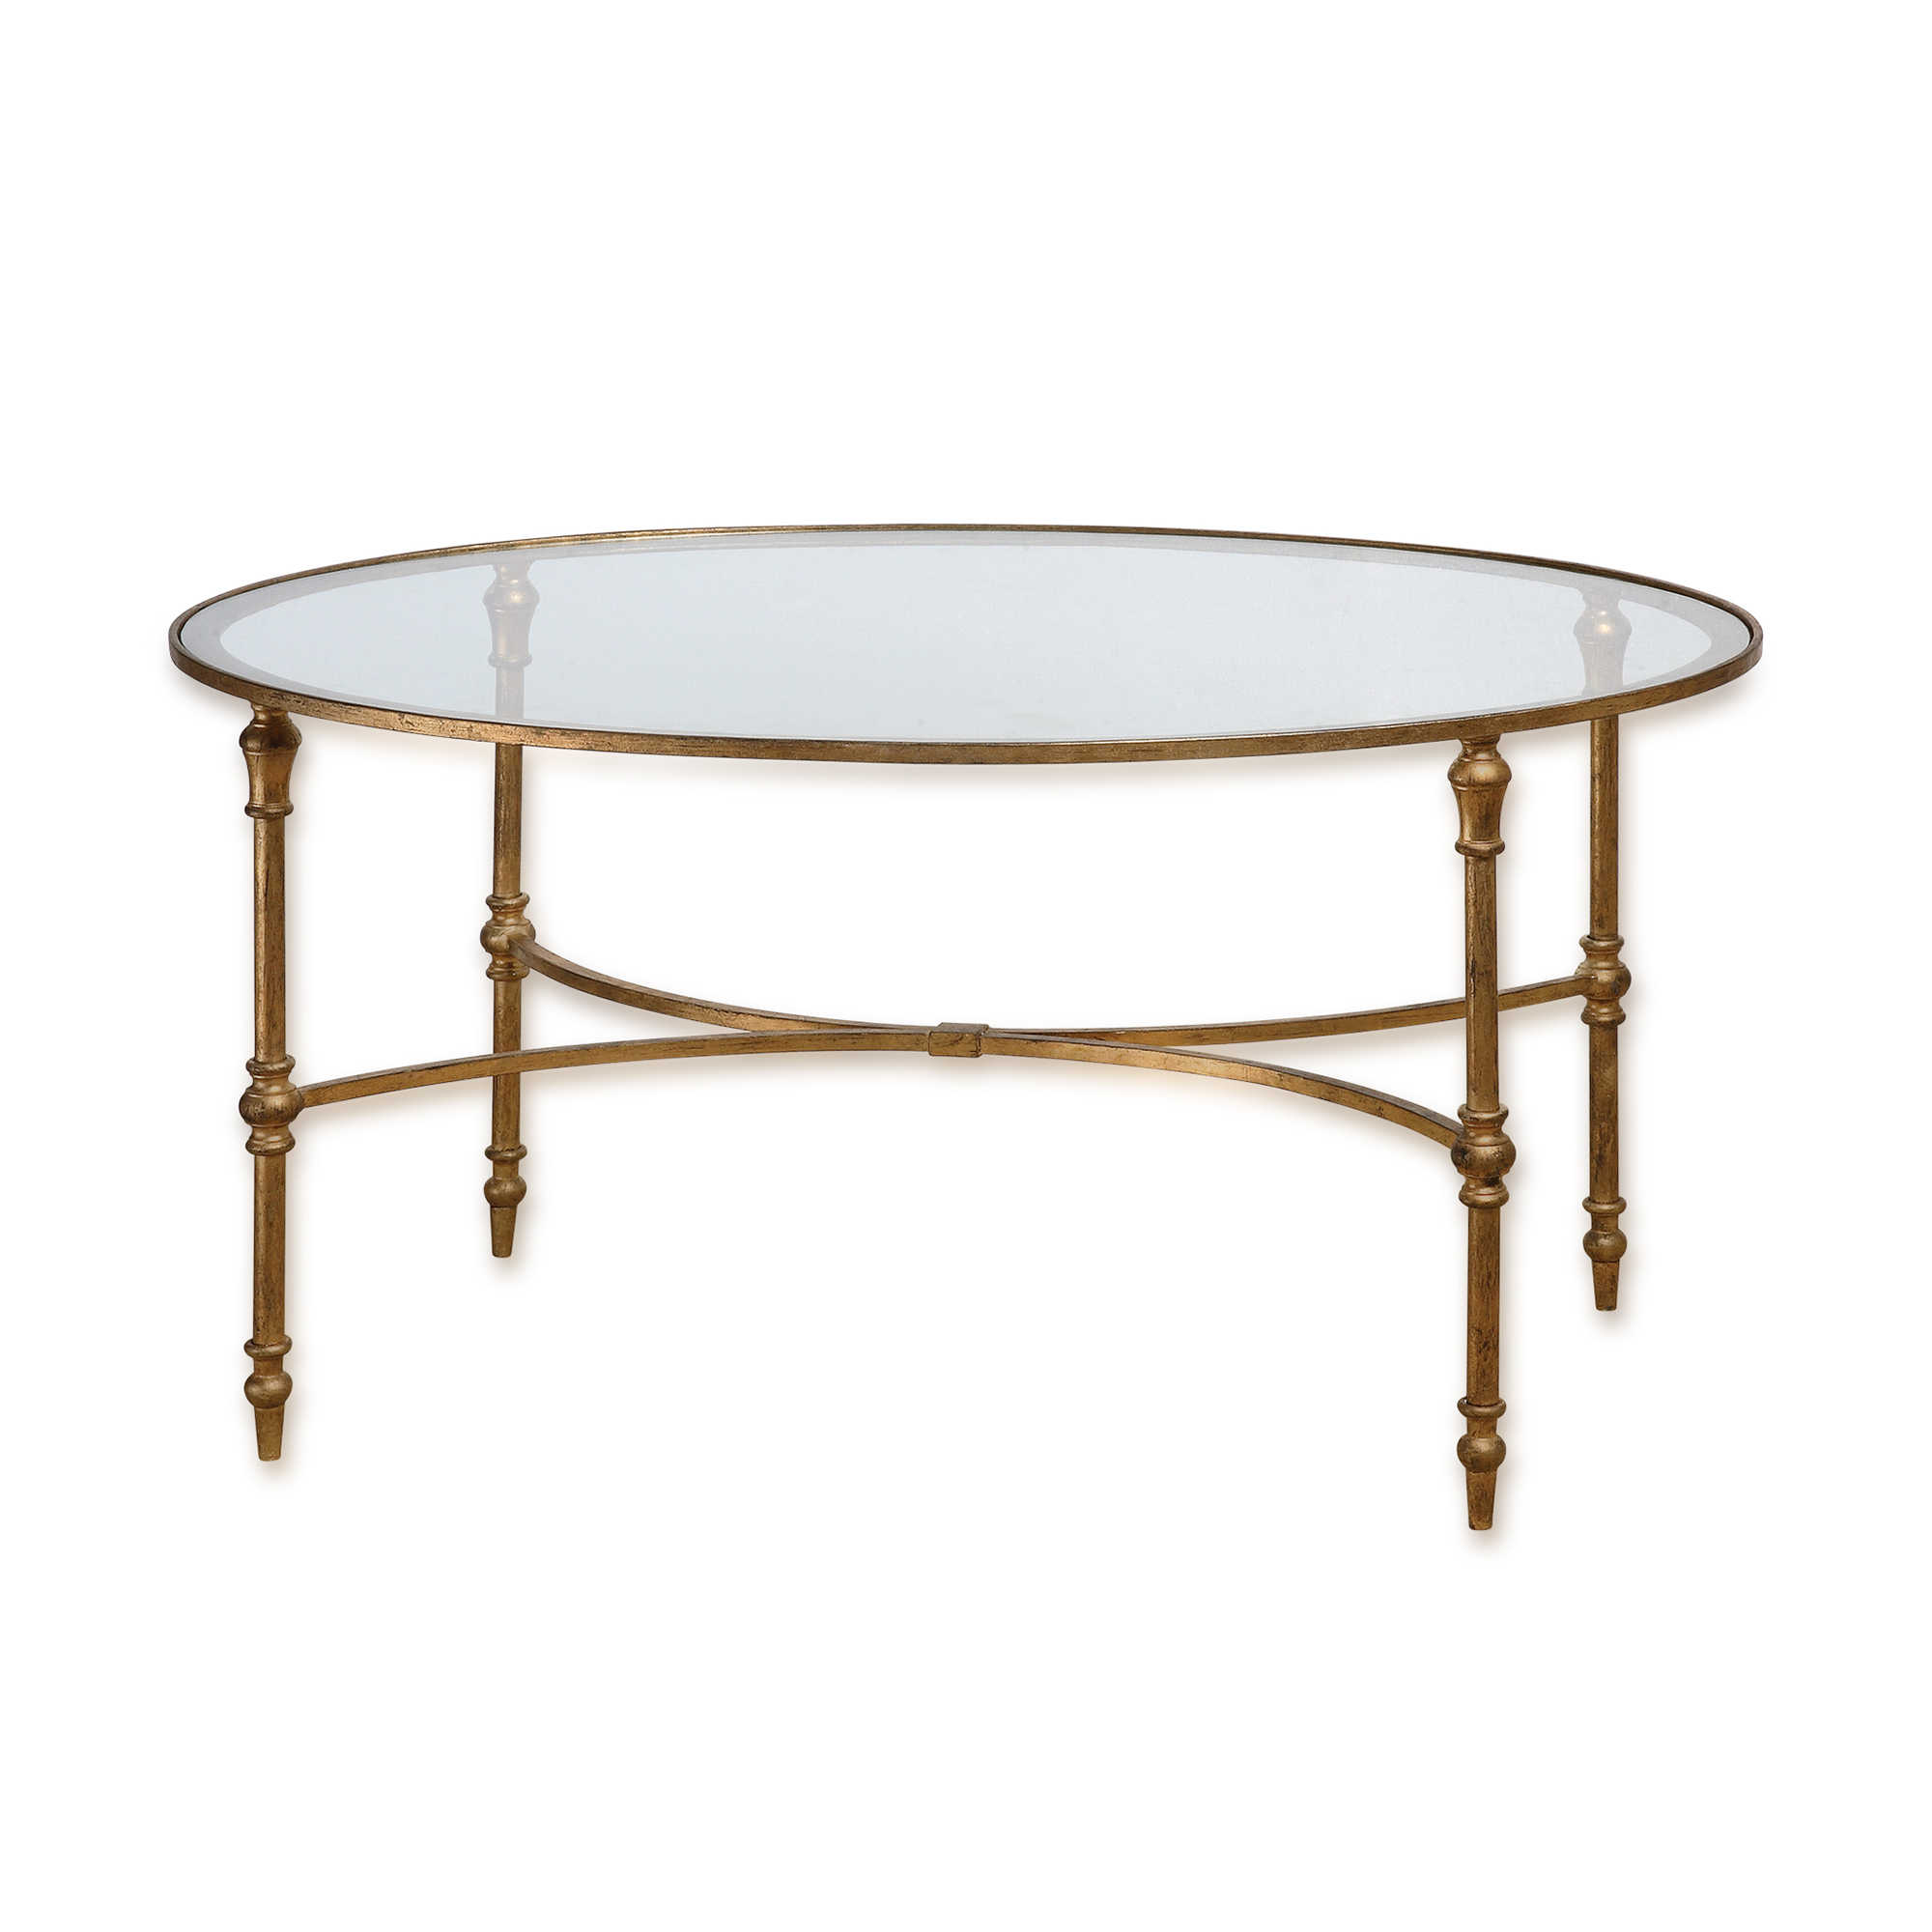 Oval Small Glass Coffee Tables With Metal Bases For Living Room Ideas